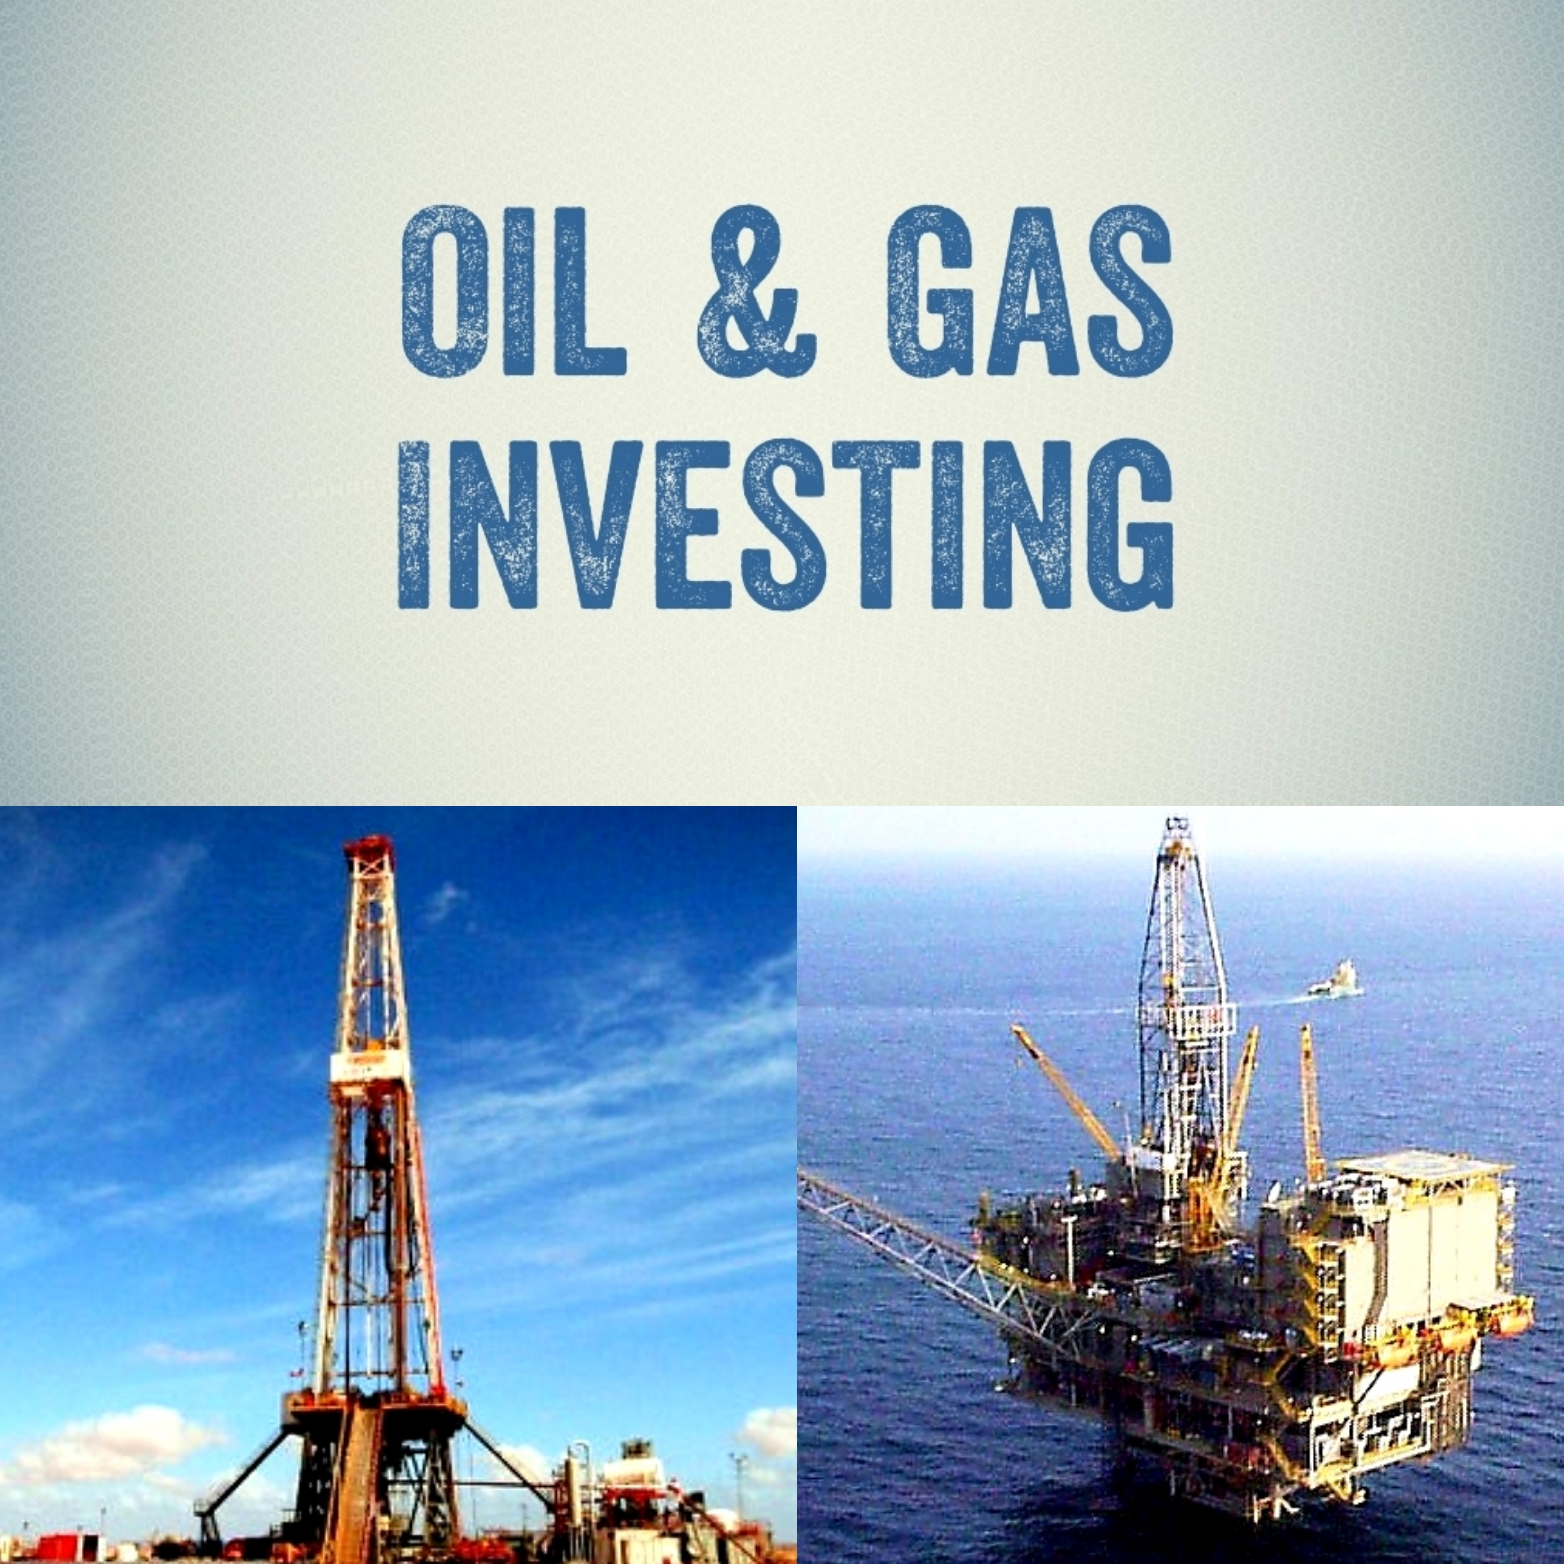 Oil & Gas Investing Collage